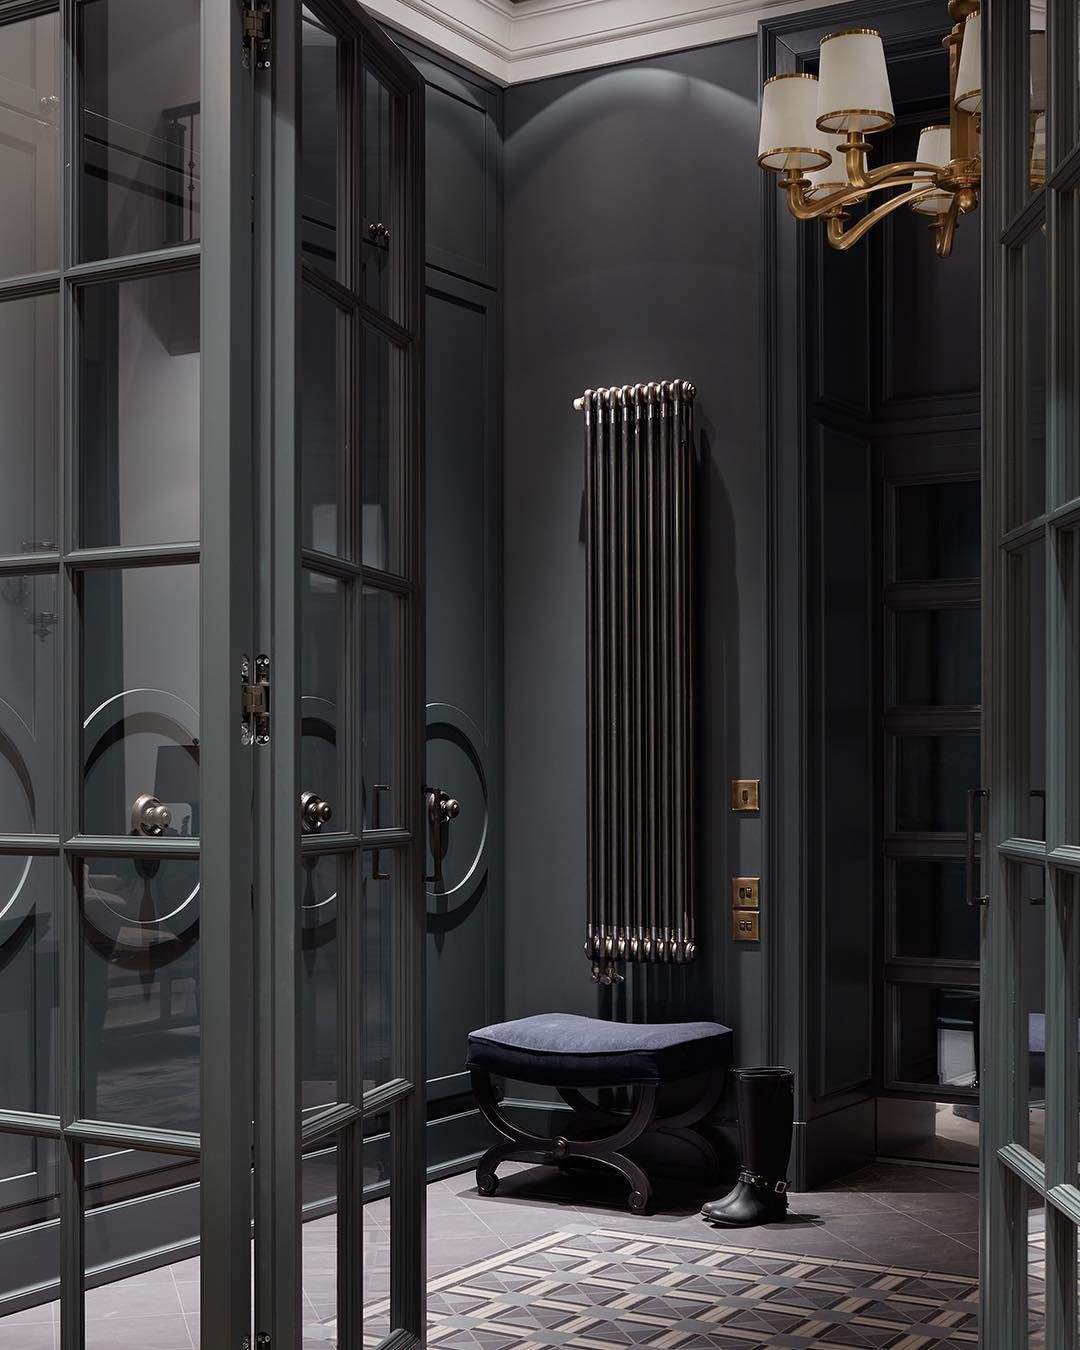 Design My Own Living Room Online Free: Dark And Mysterious The Stunning Entrance Hall In Bykovo